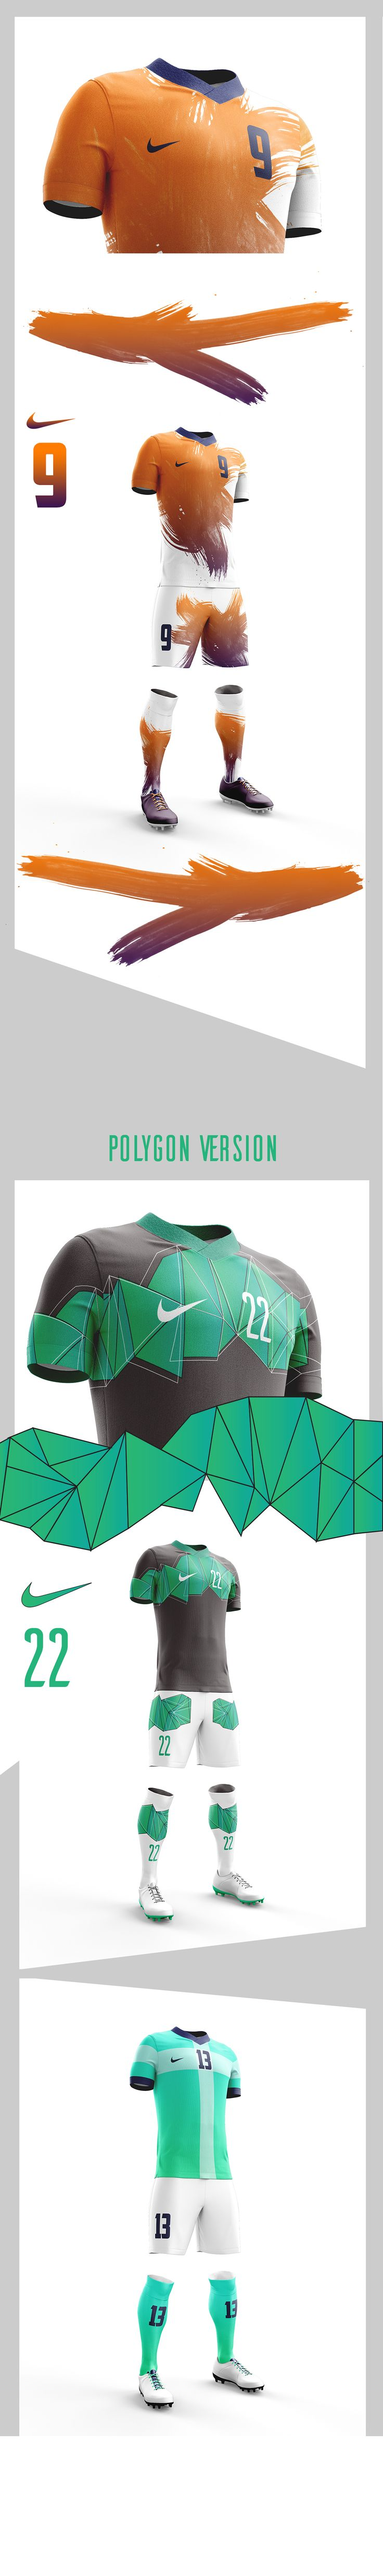 Some designs of a football tenue, i like the polygon one te most.